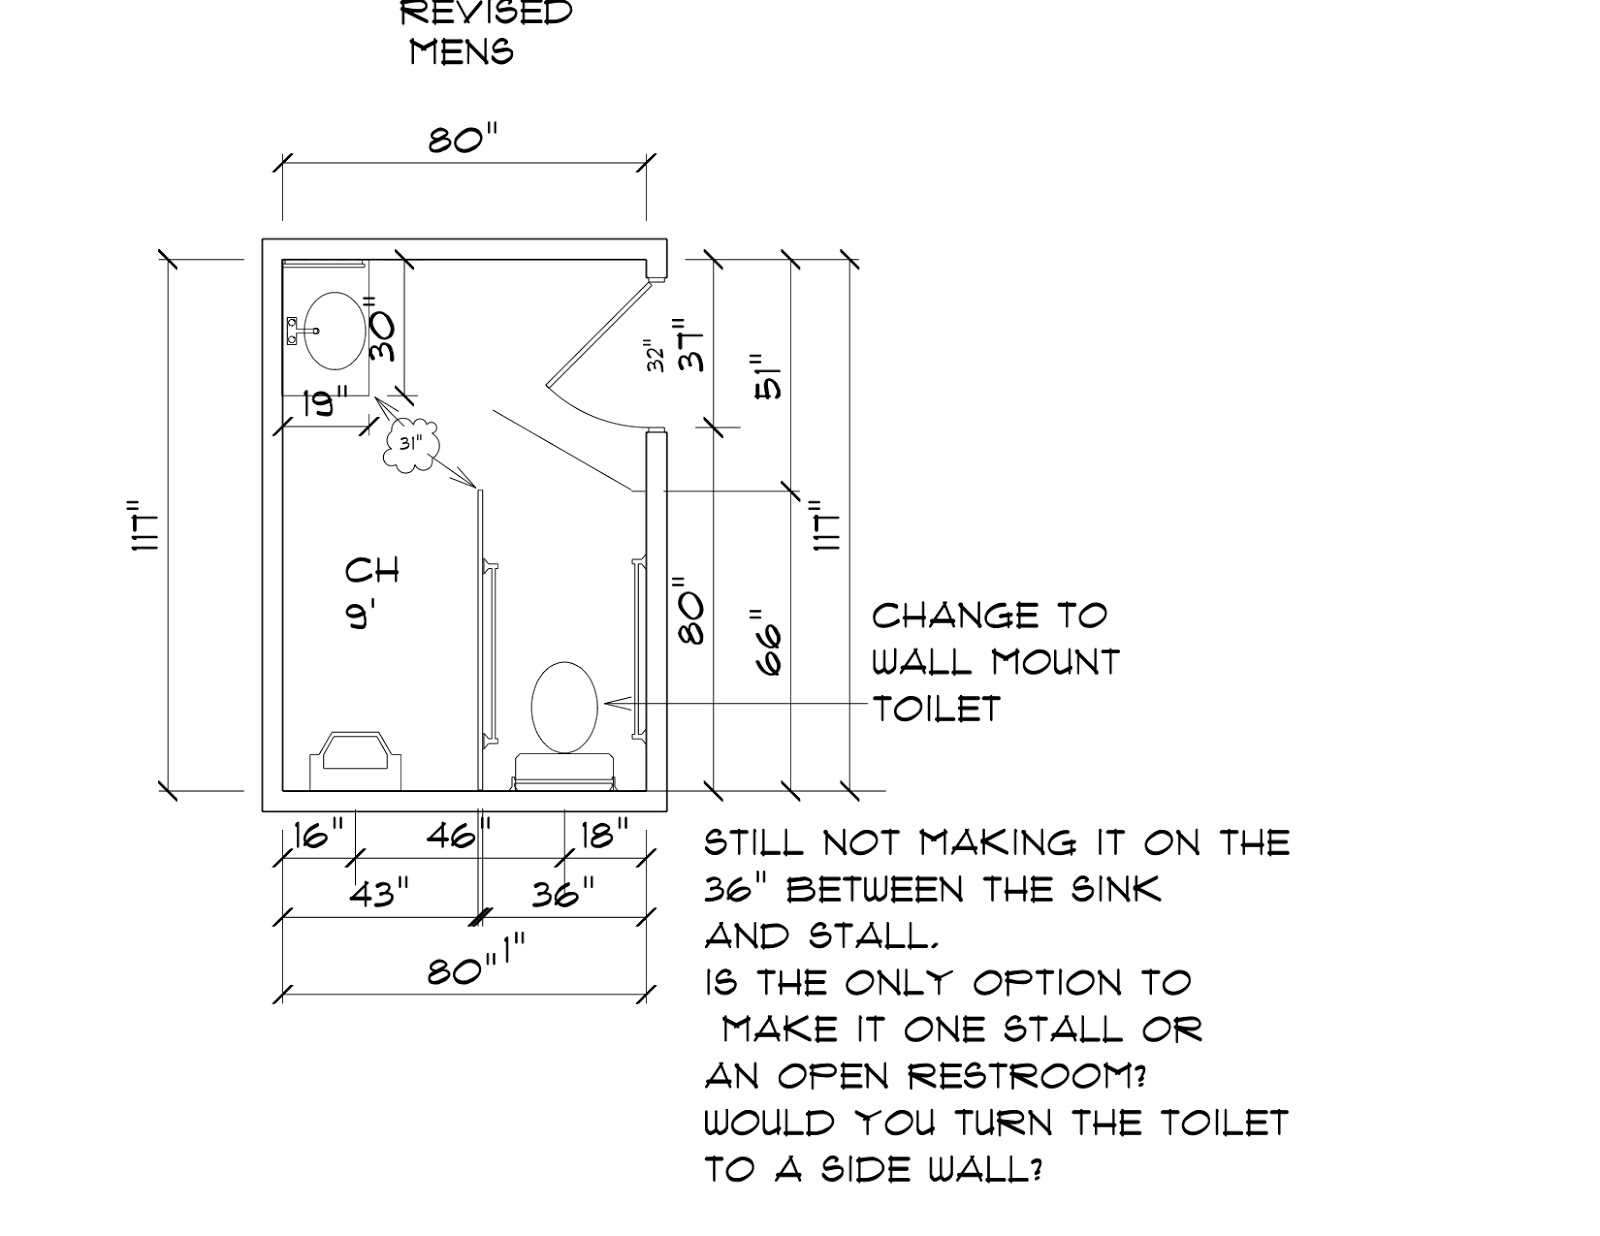 ada: redesigning a public men's bathroom based on ada regulations